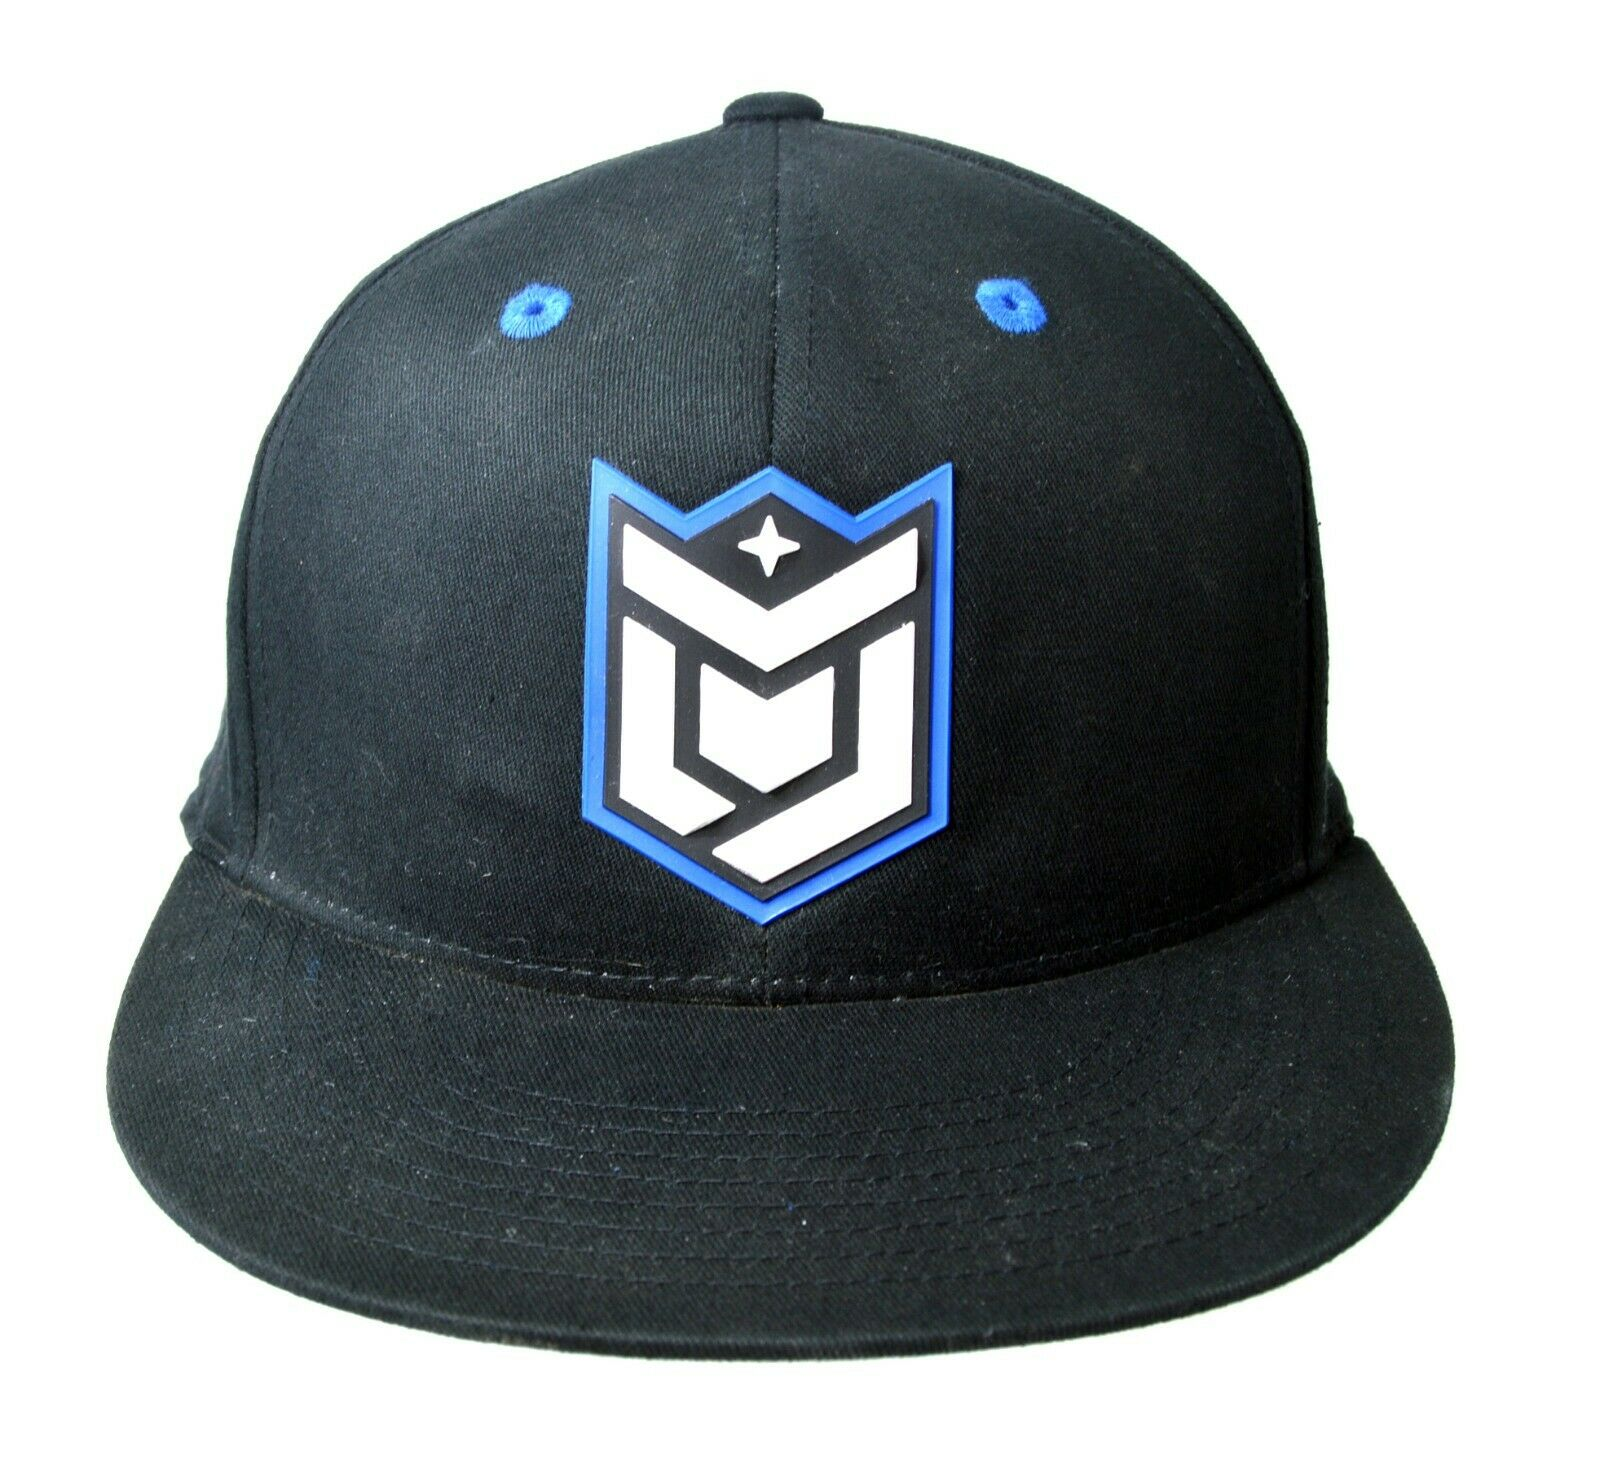 Dropstar Forged Stretch Fitted Hat 6 7/8 - 7 1/4 Blue and Black